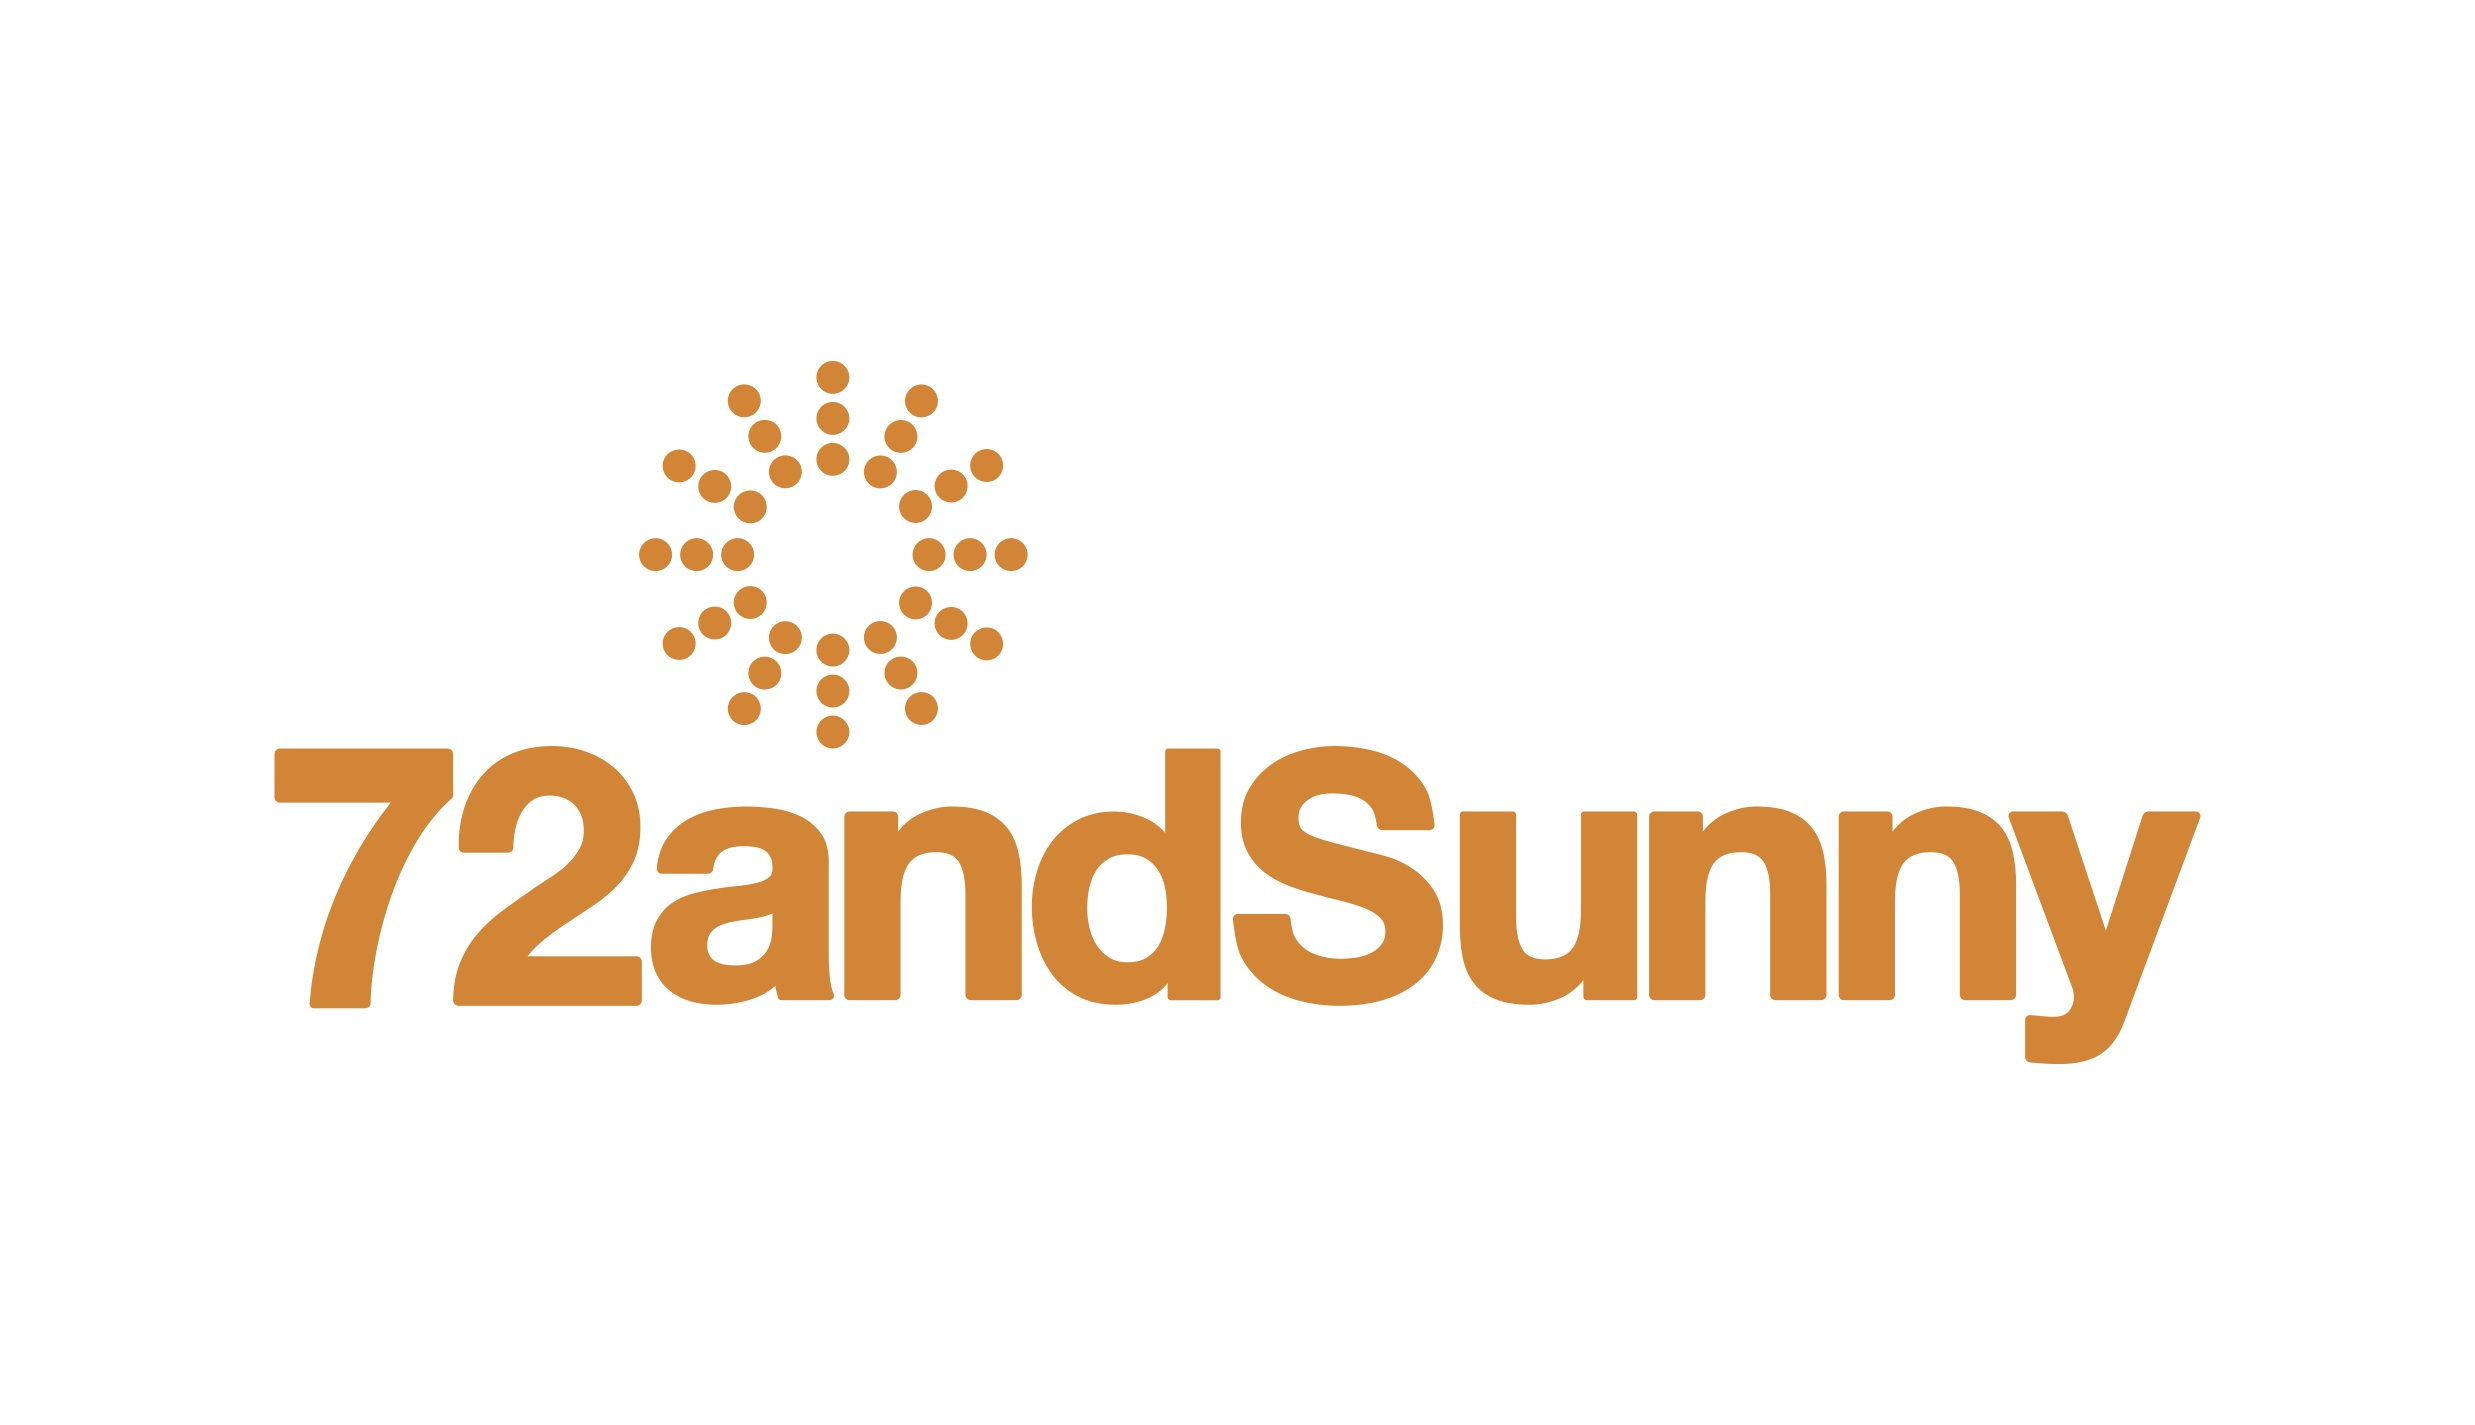 72andSunny Adds Two New Partners to Growing Client List